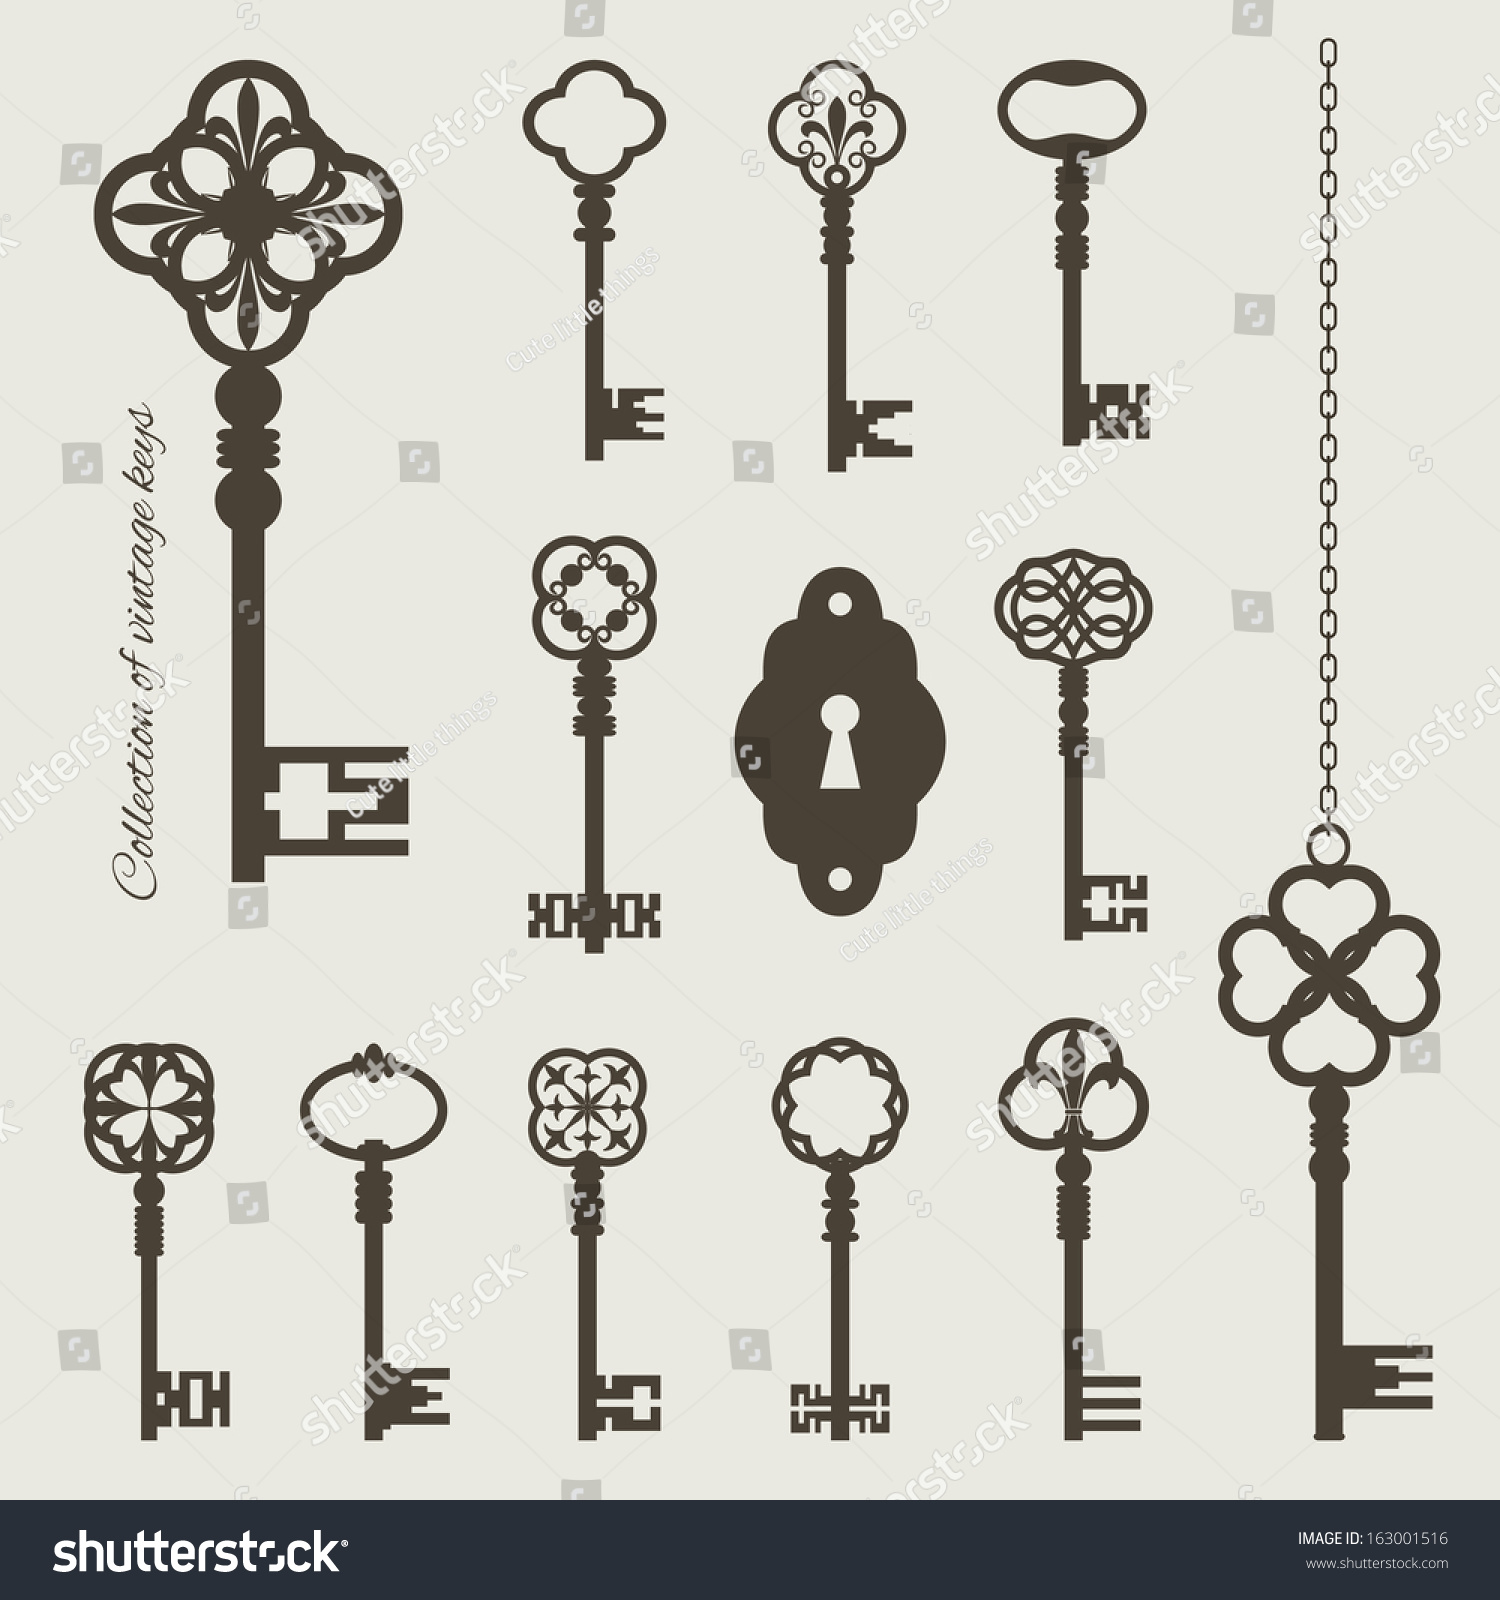 Vector Key Illustration: Collection Vintage Keys Keyhole Isolated On Stock Vector